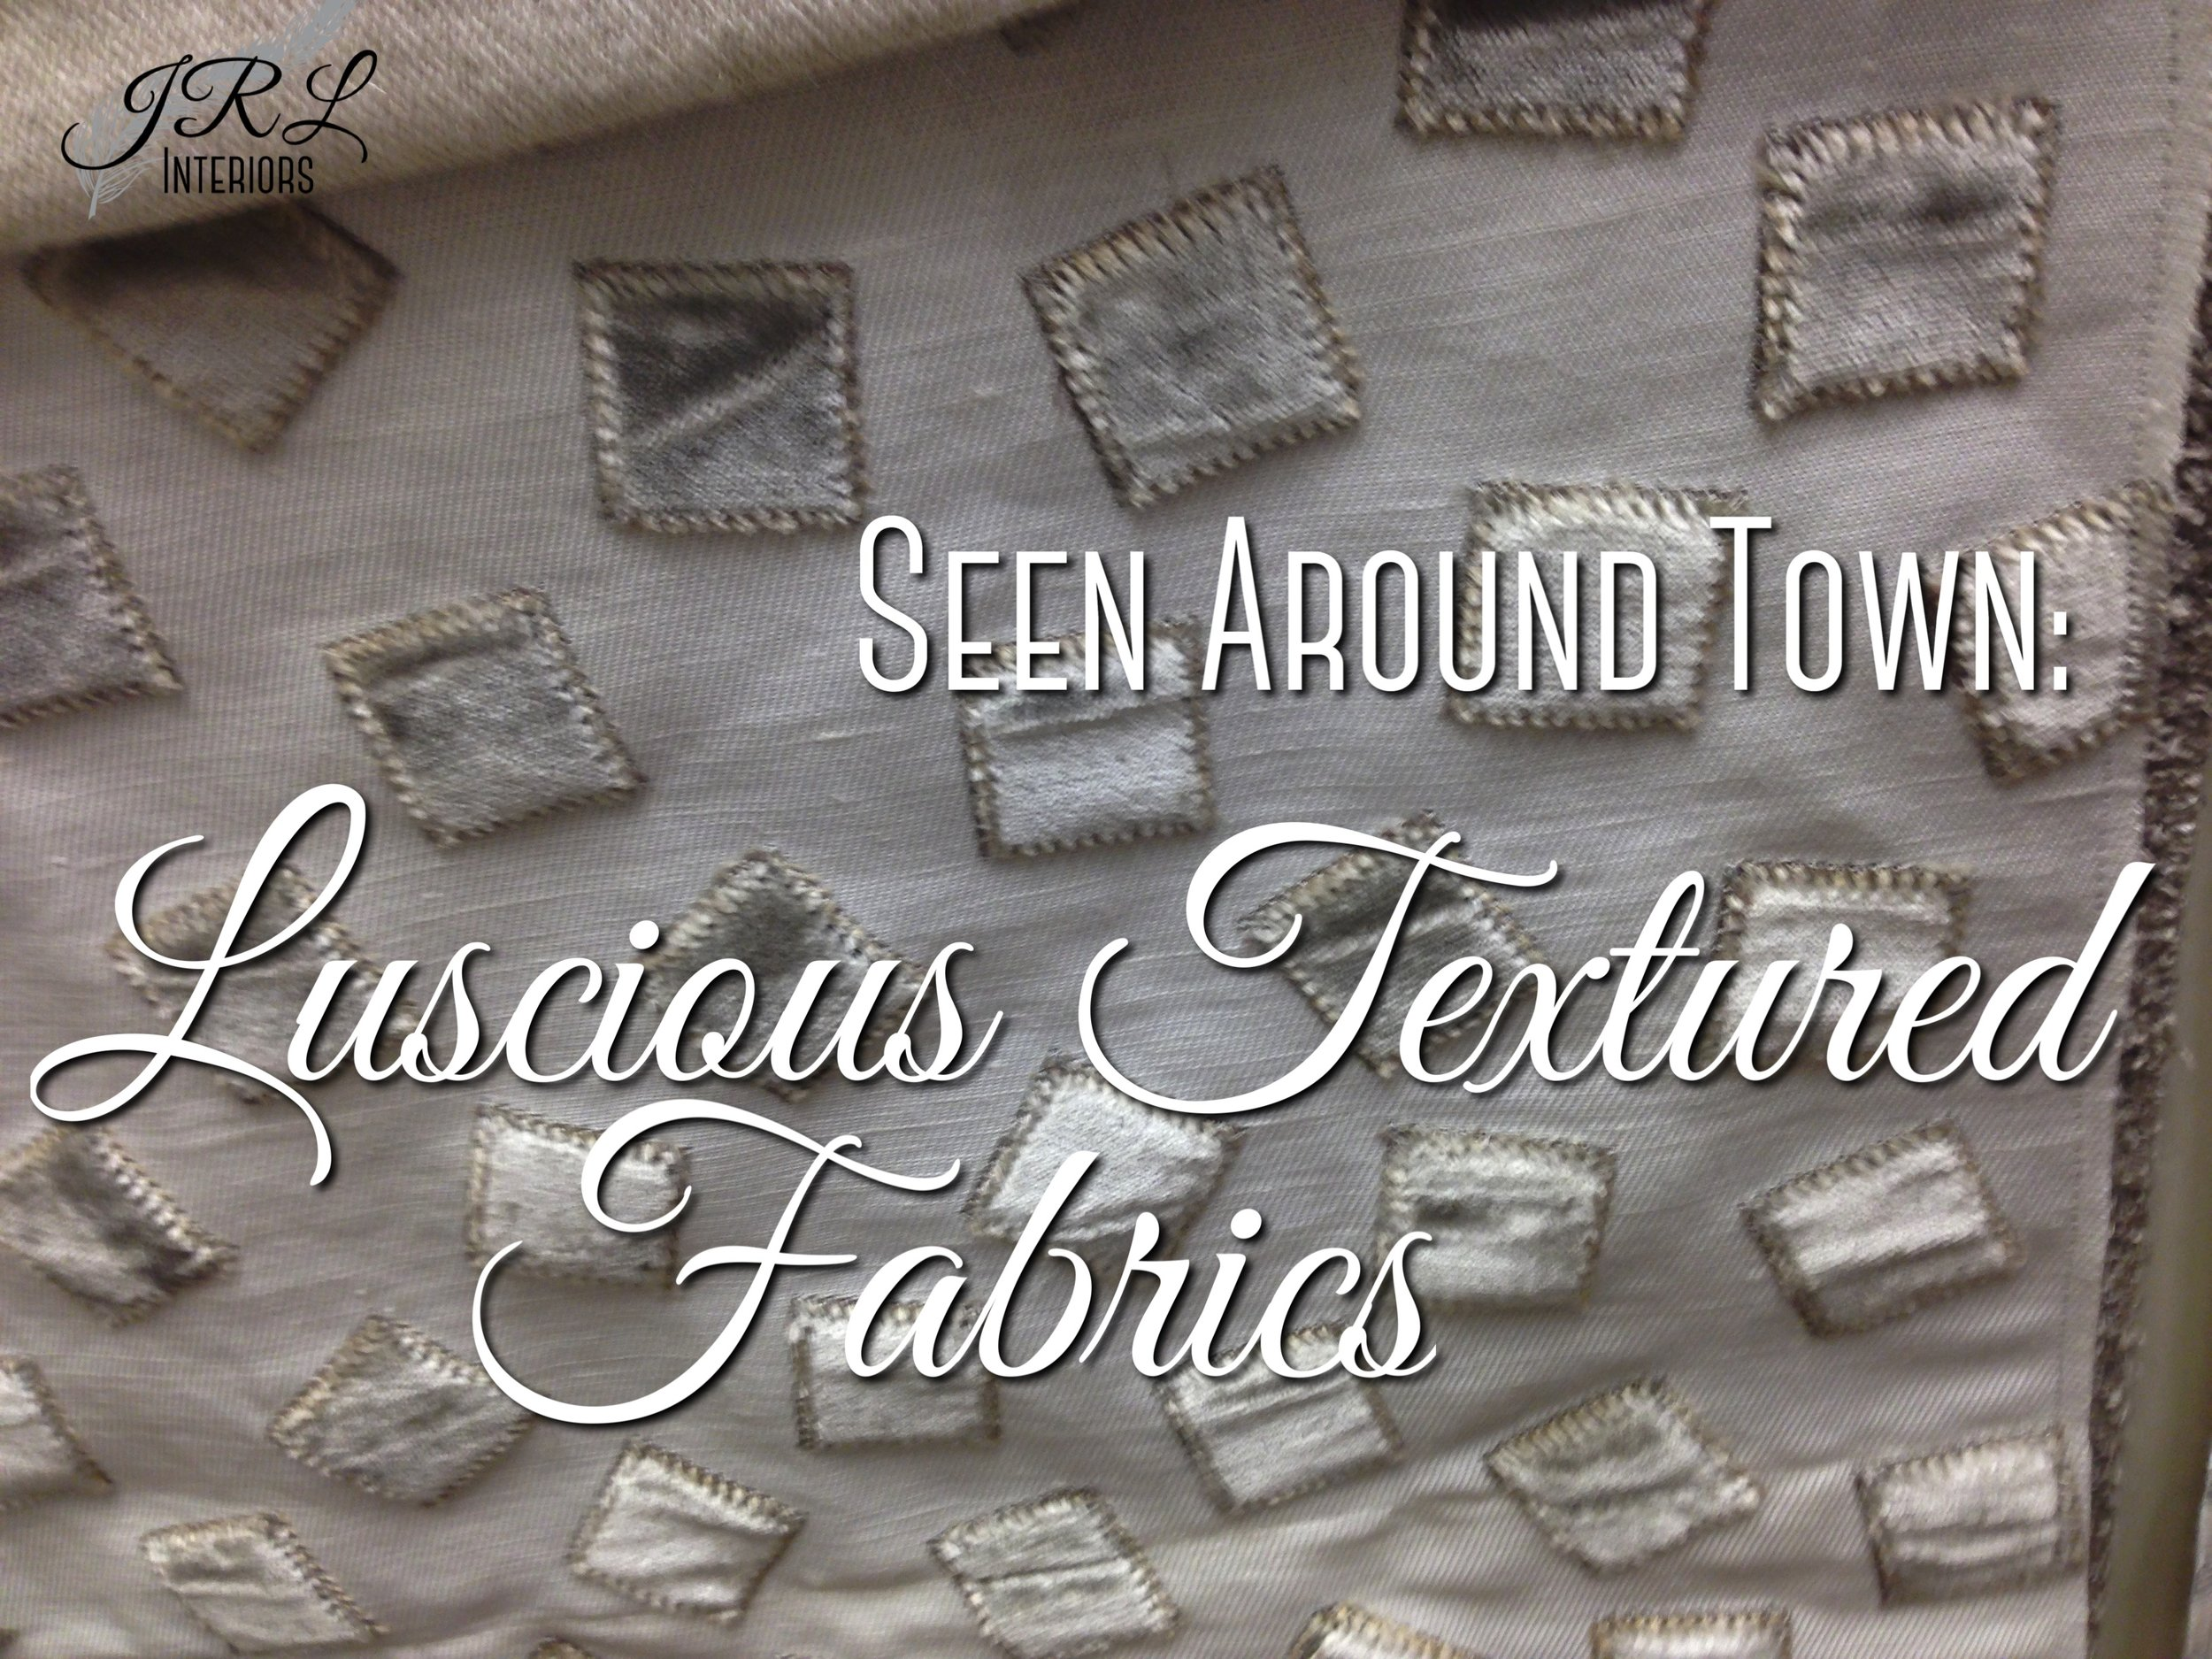 Seen Around Town. Luscious Textured Fabrics